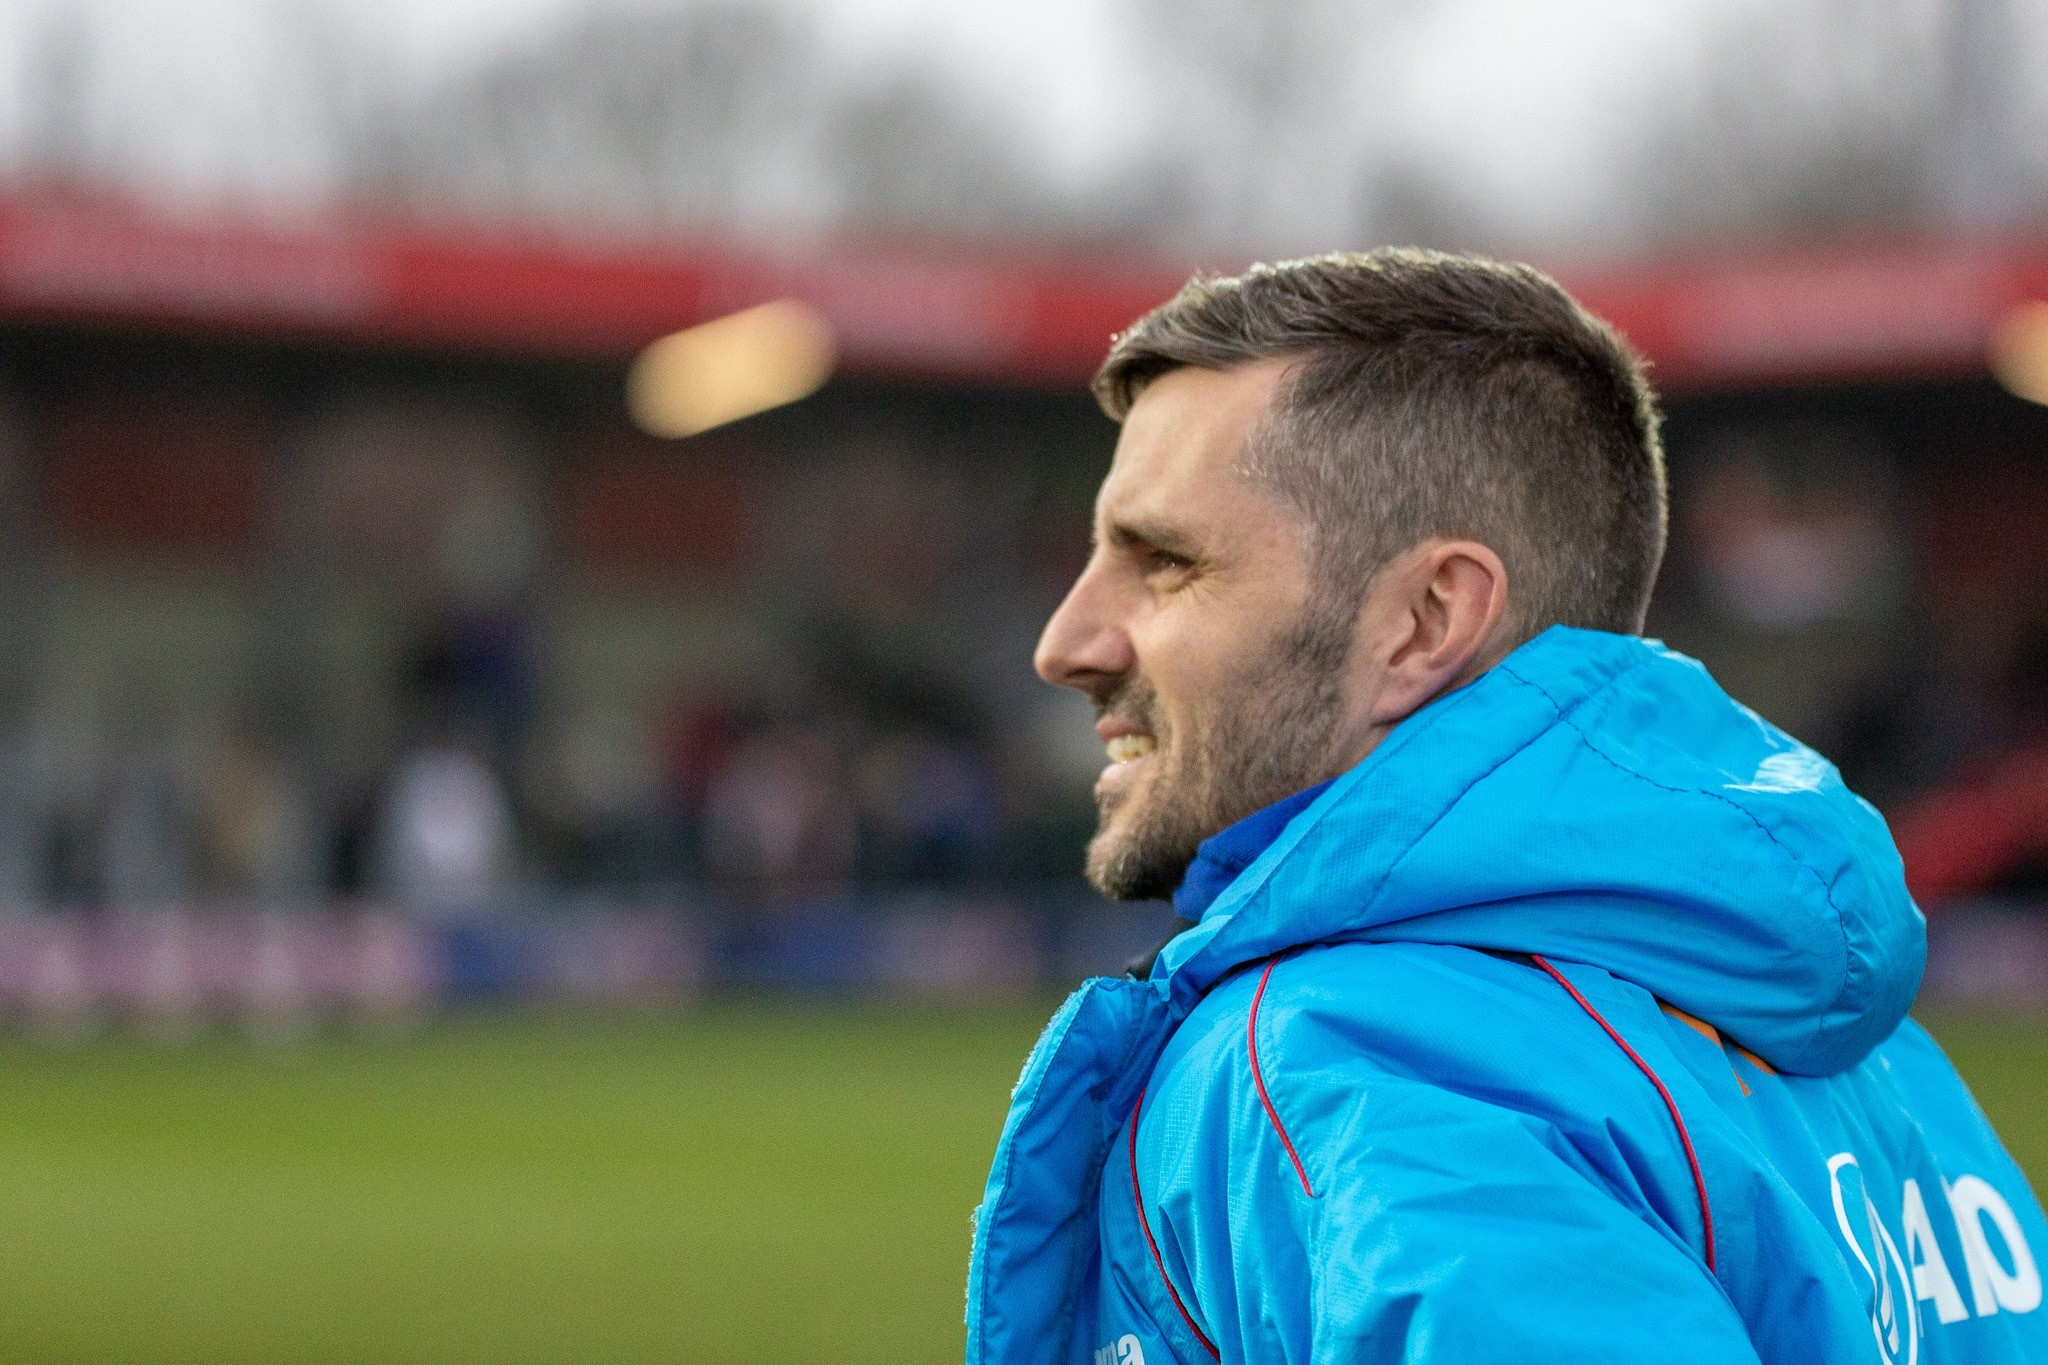 Eastleigh boss Ben Strevens